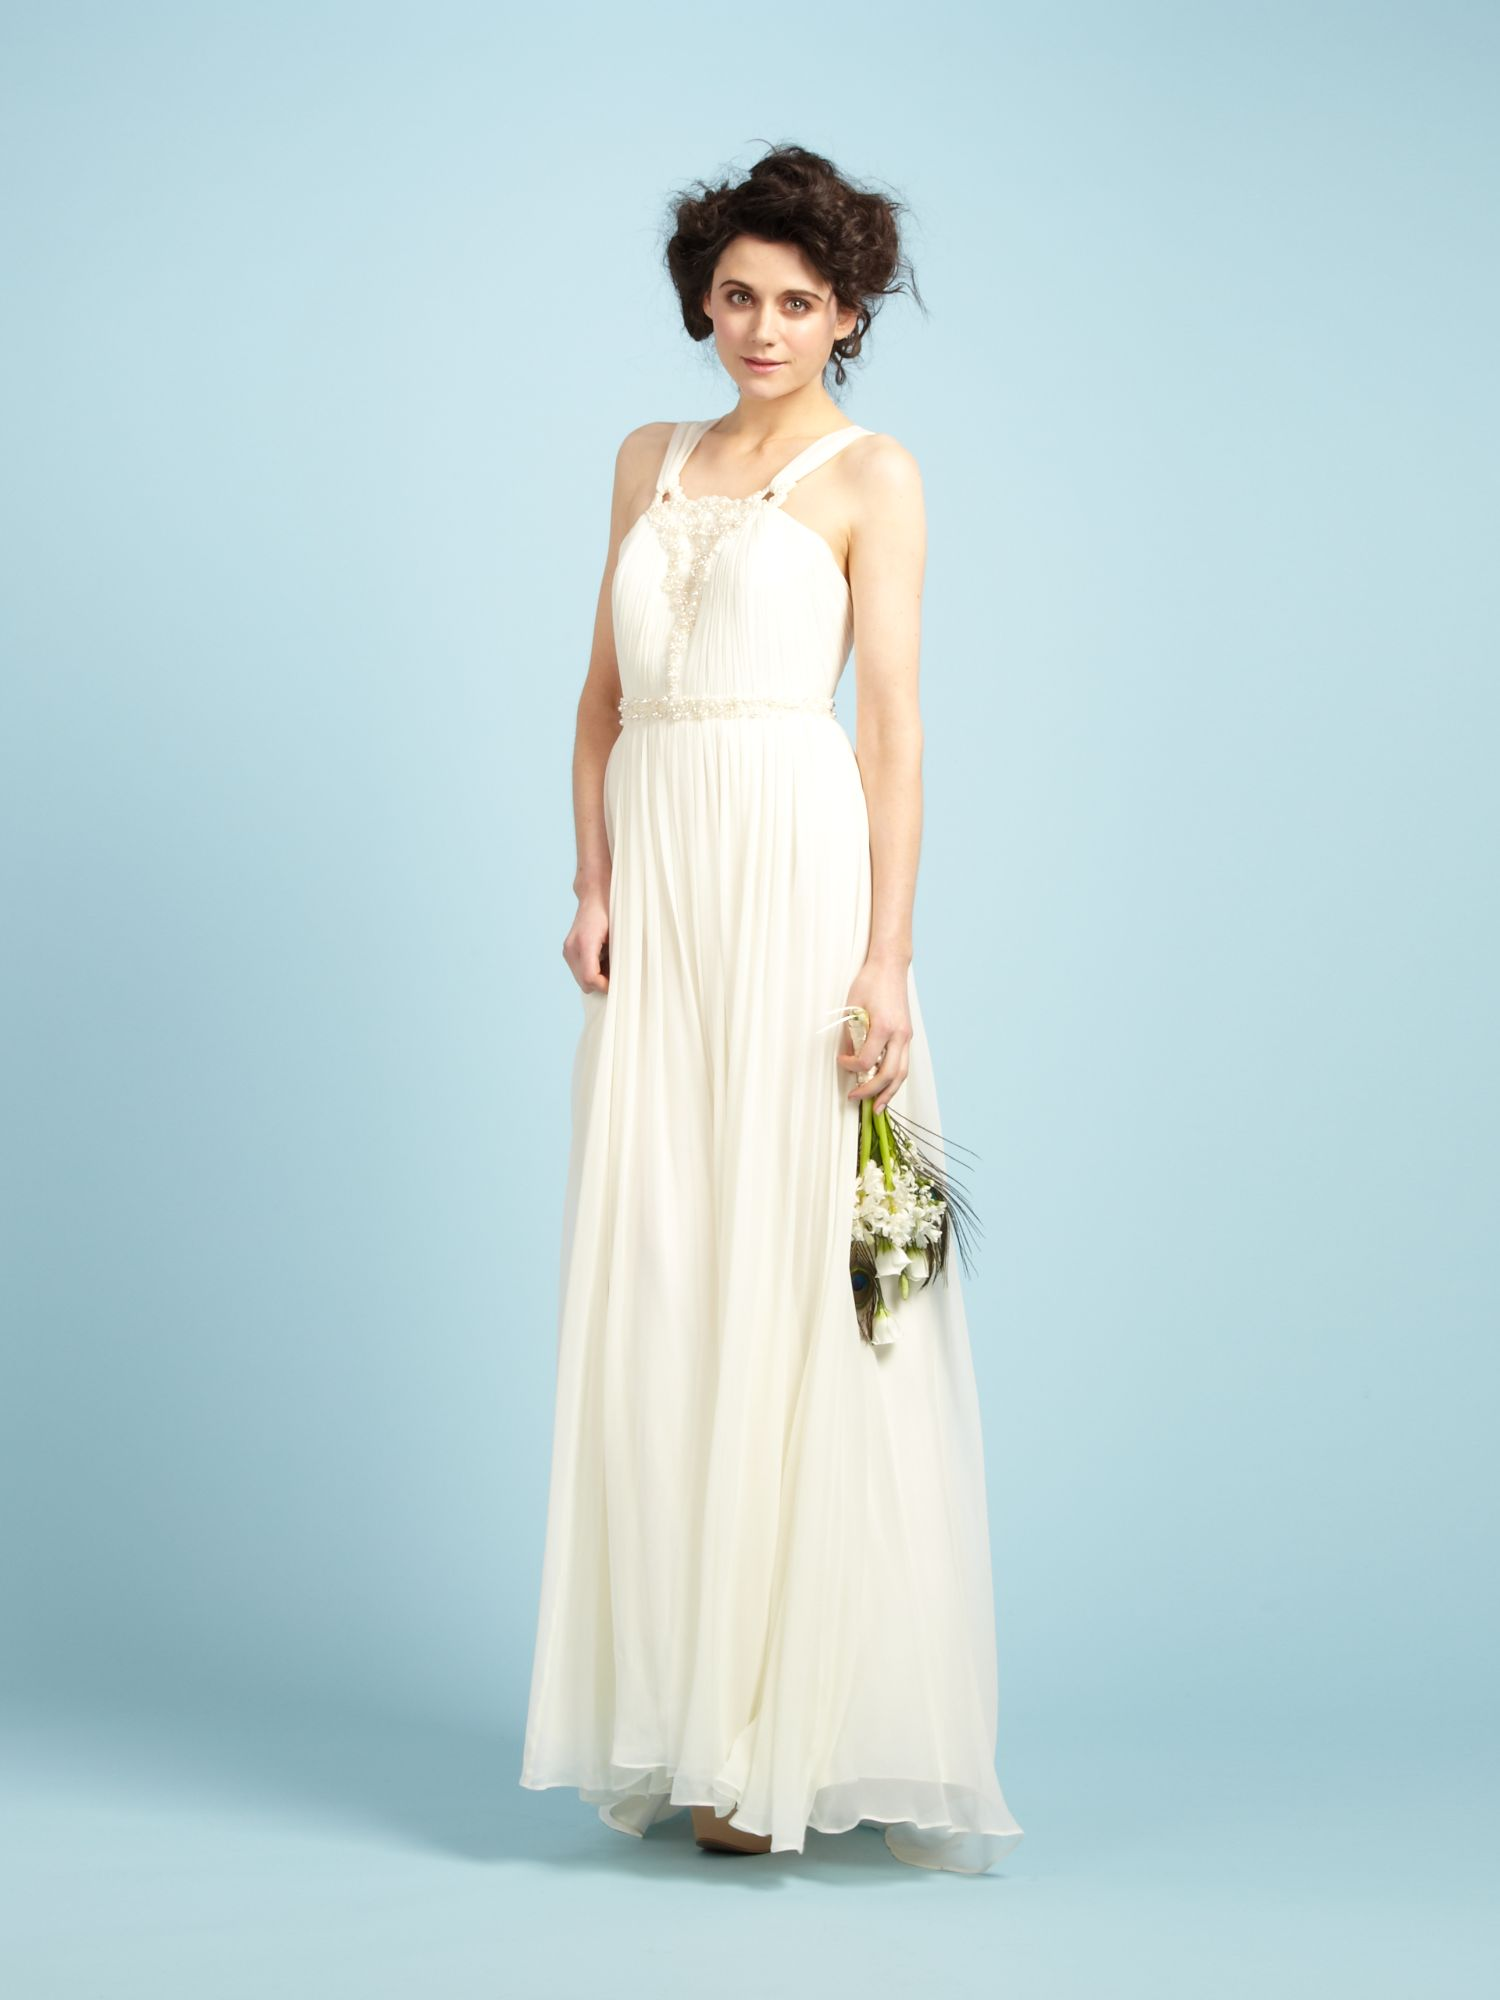 Lyst - Biba Zoe Embellished Strapped Maxi Bridal Gown in Natural